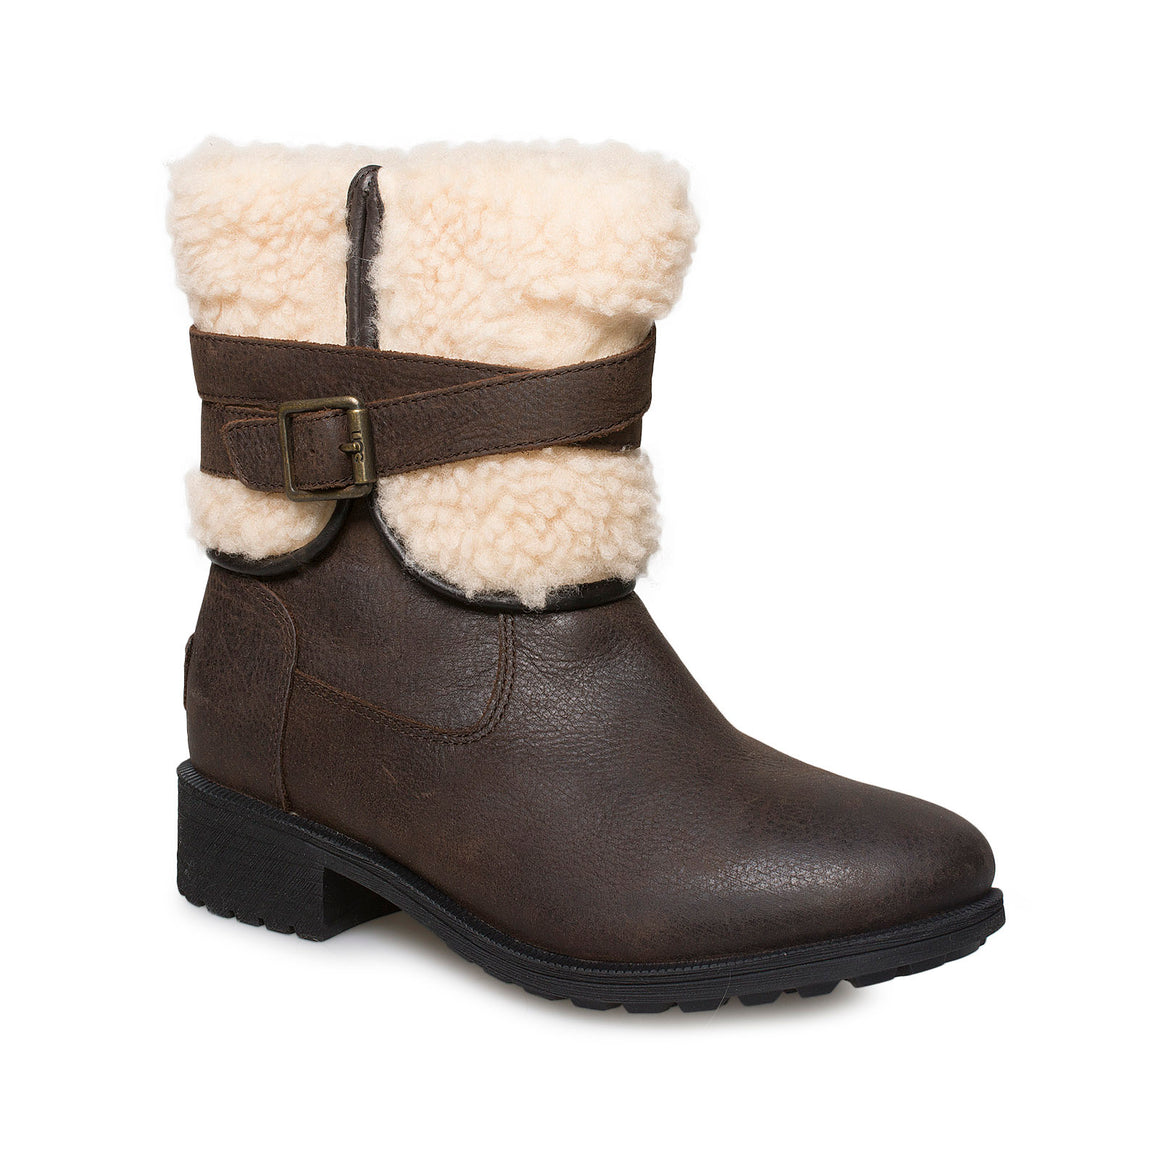 UGG Blayre IV Stout Boots - Women's